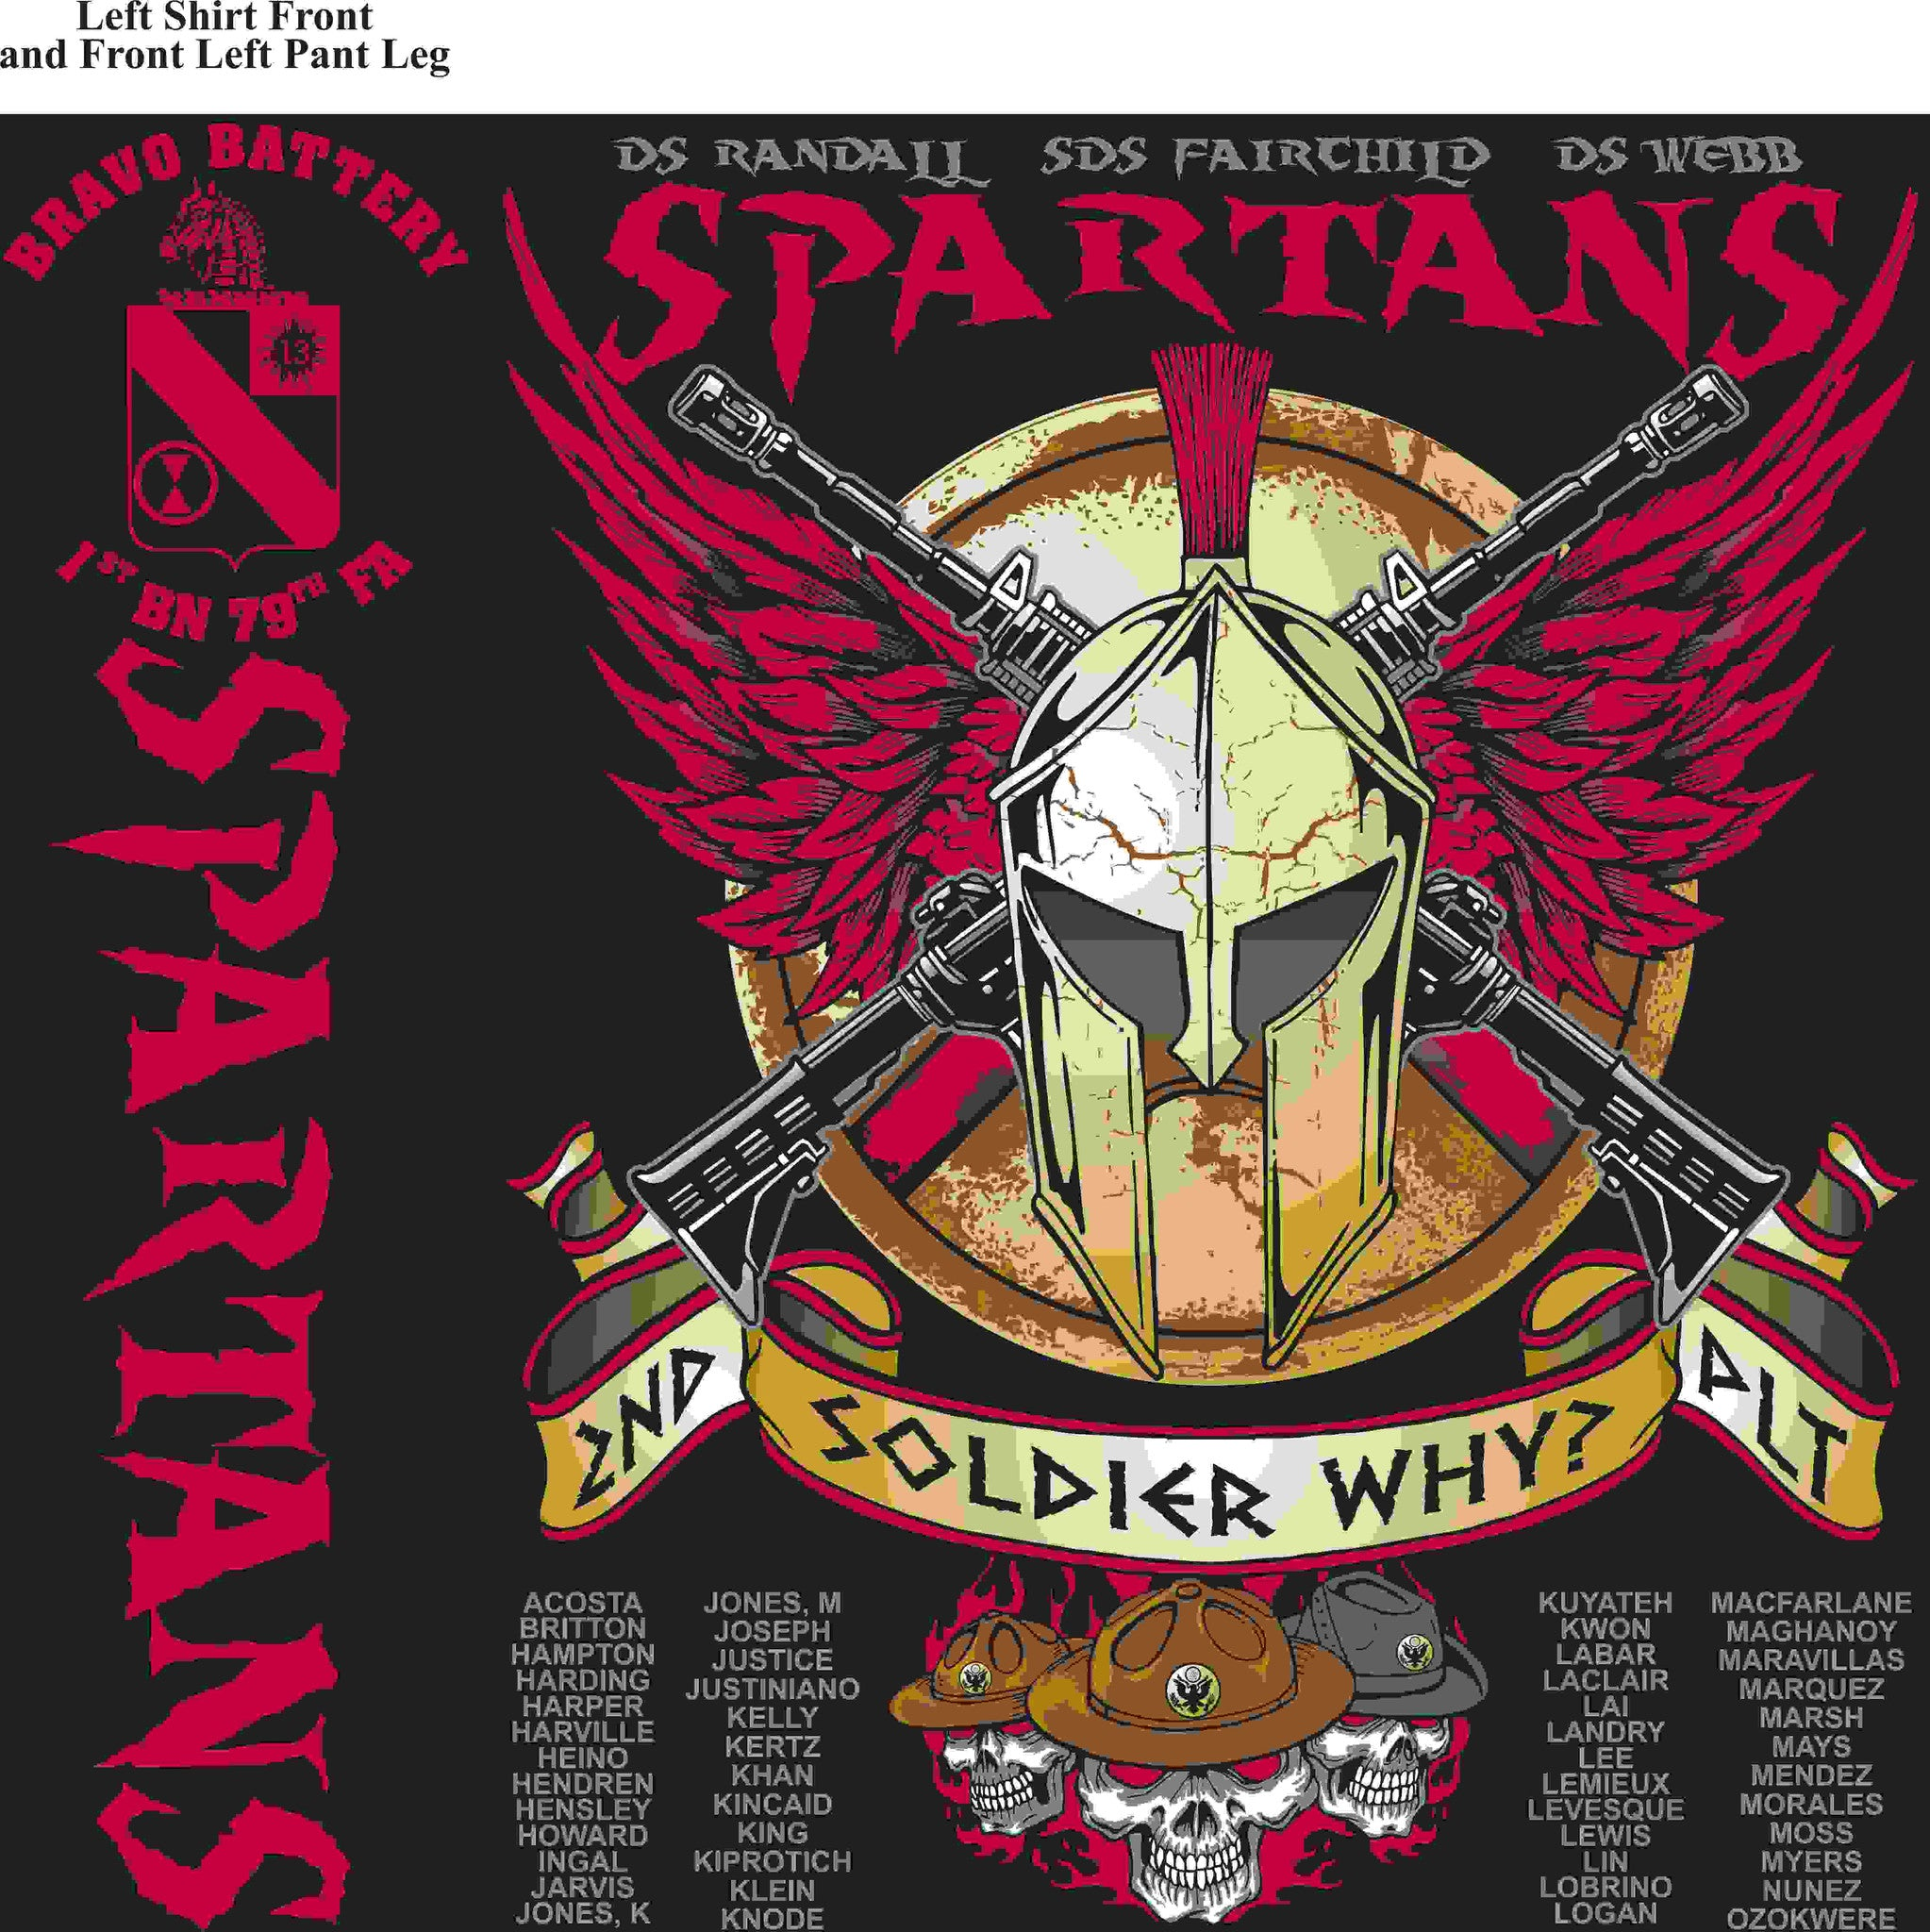 PLATOON SHIRTS (digital) BRAVO 1st 79th SPARTANS FEB 2016